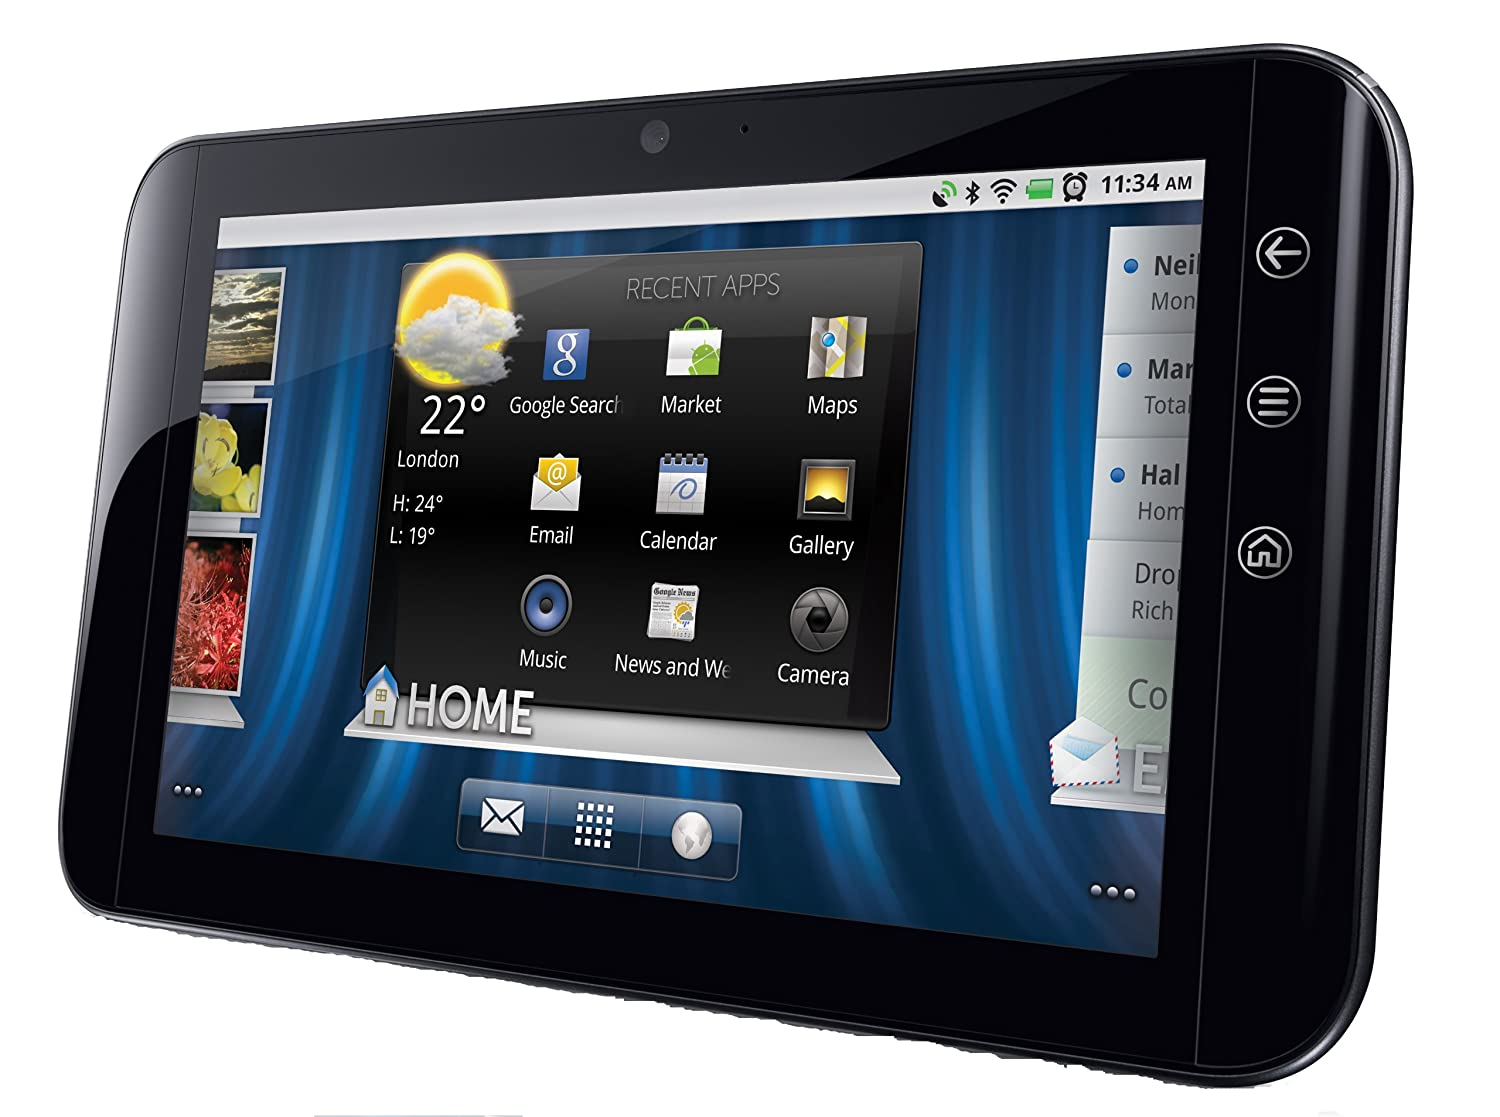 Amazon.com: Dell Streak 7 4G Android Tablet (T-Mobile): Cell Phones &  Accessories